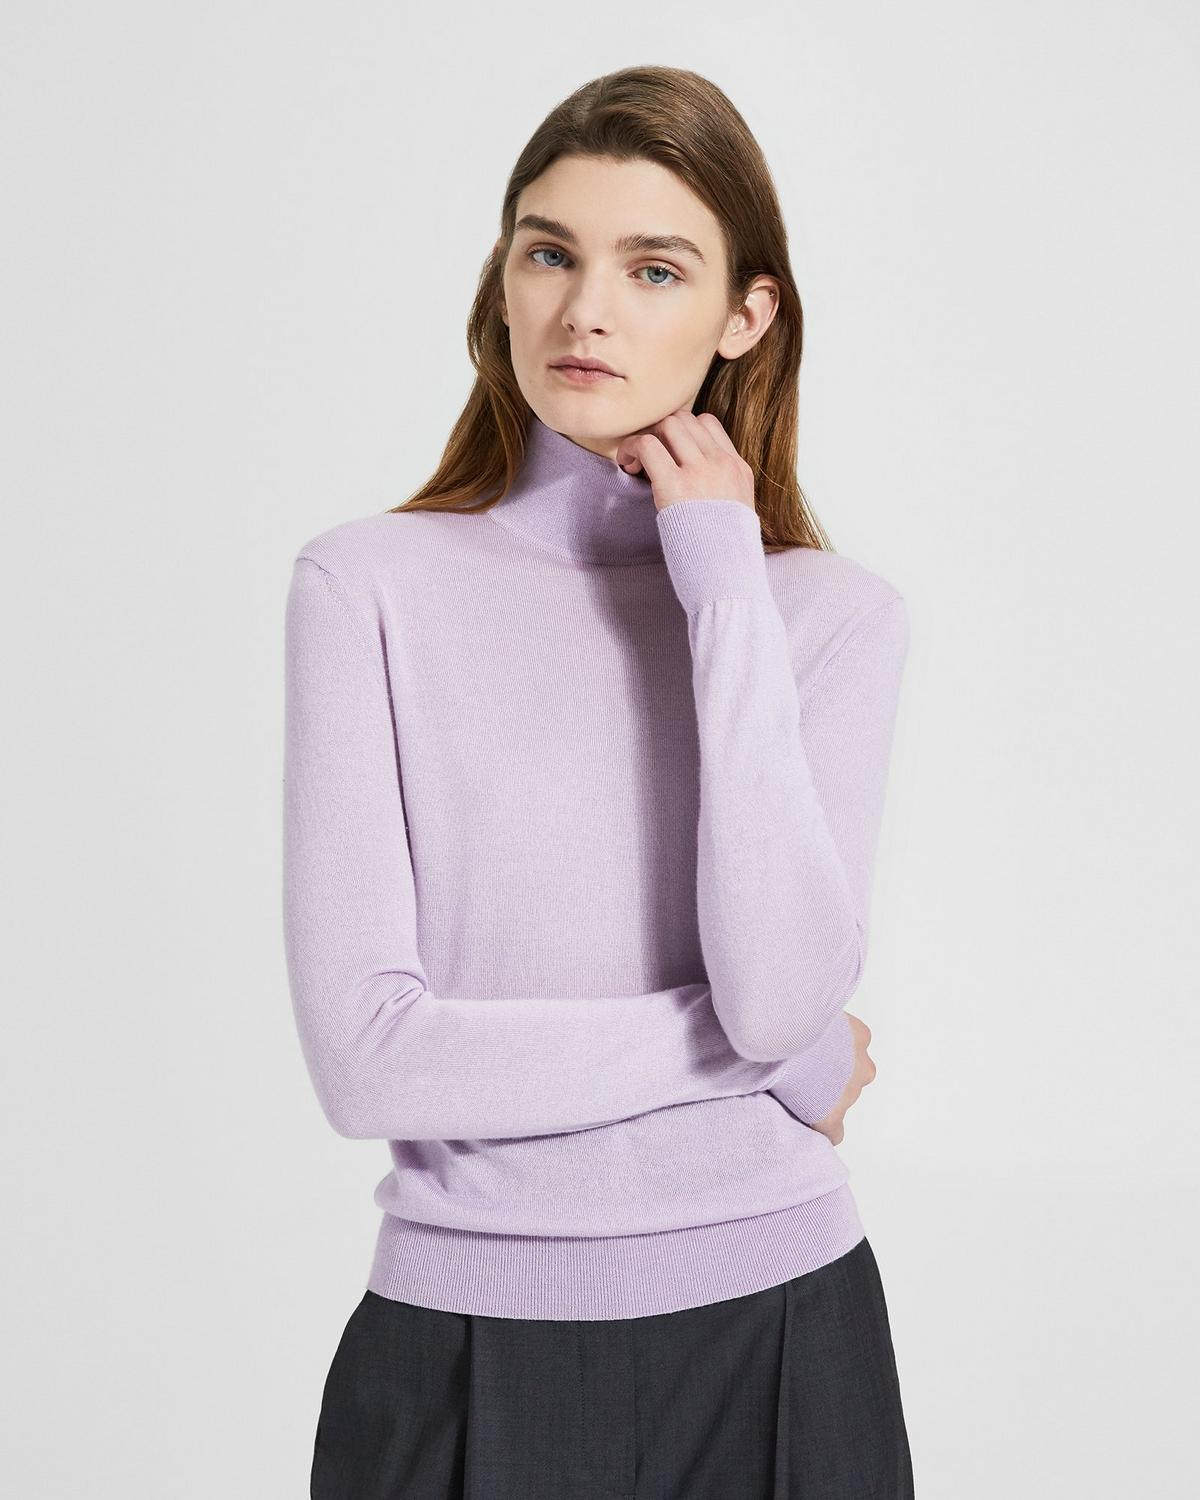 Silken Knit Turtleneck